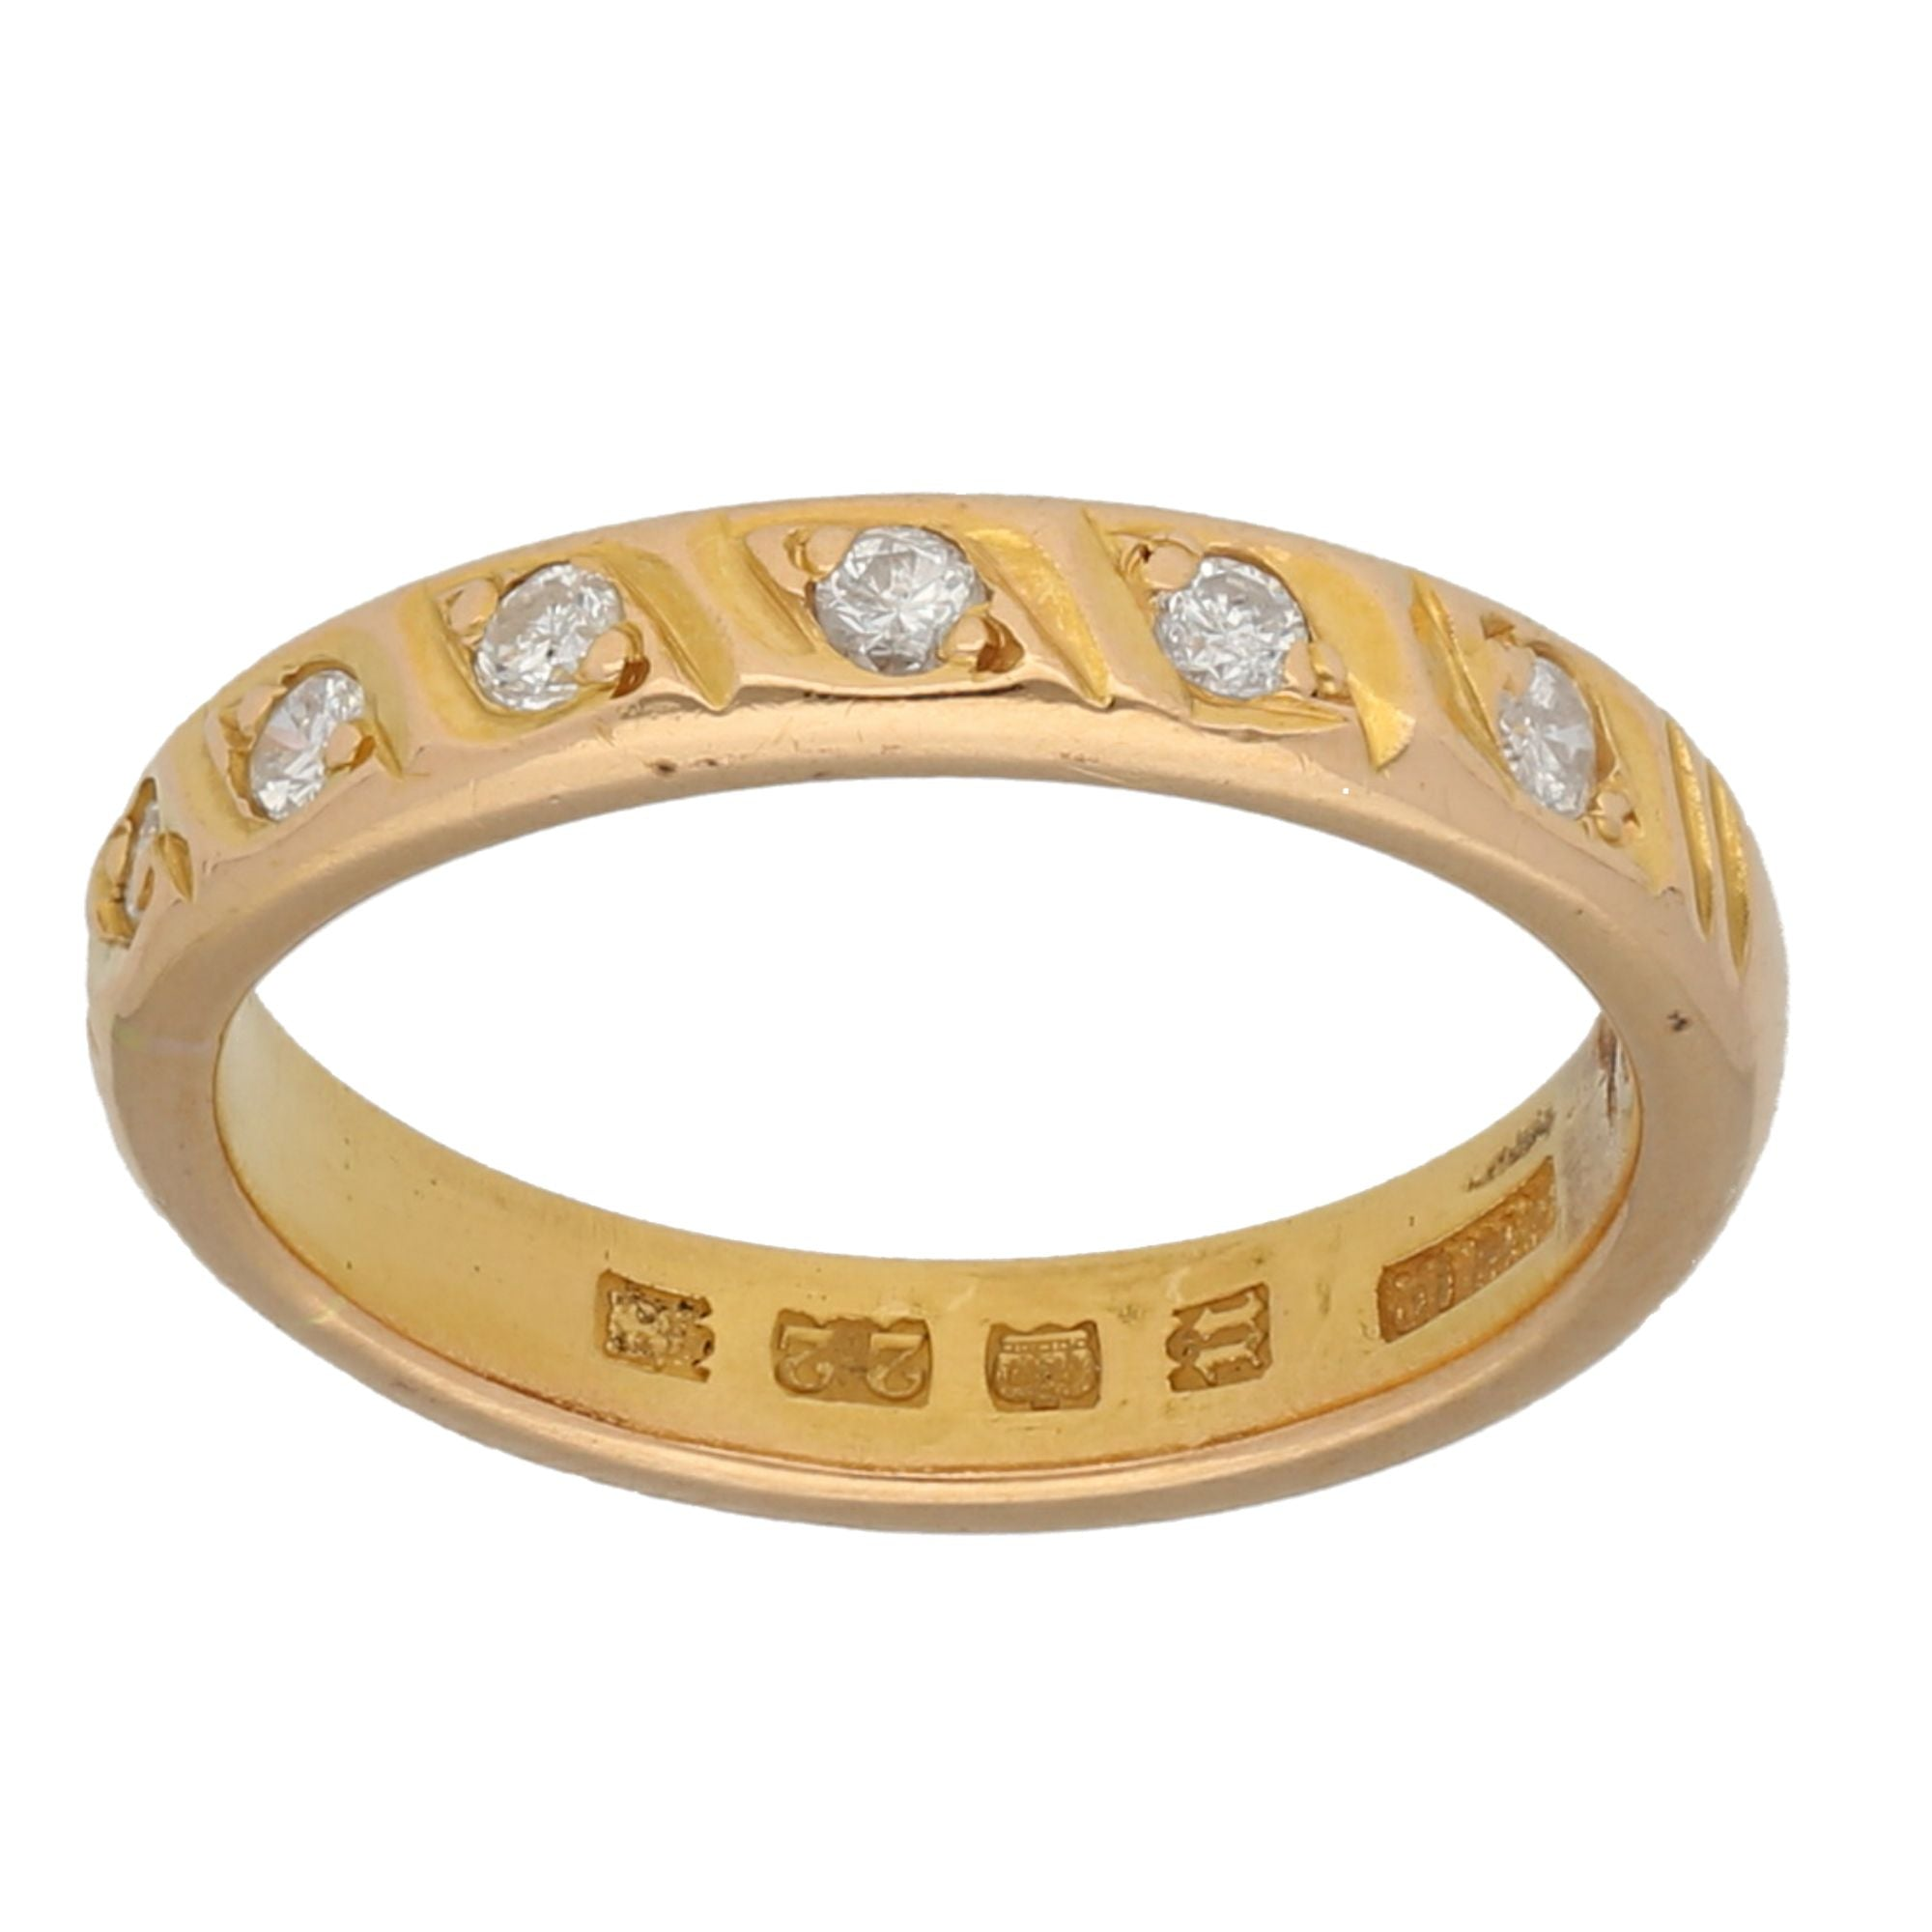 22ct Yellow Gold Stone Set Ladies Half Eternity Ring Size N